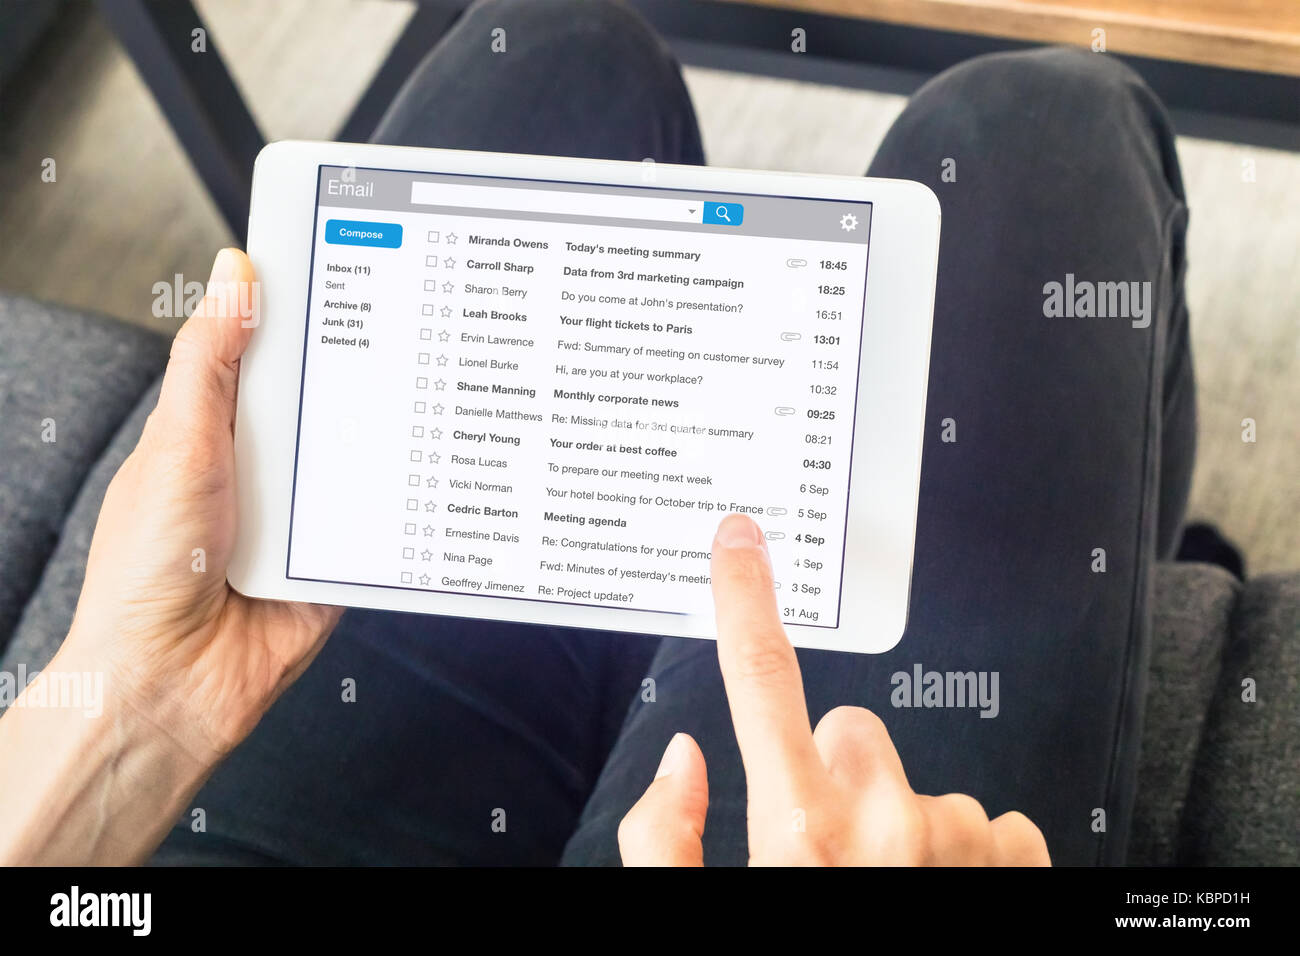 Person reading email messages in inbox at home on digital tablet computer with wireless internet, close-up of device - Stock Image